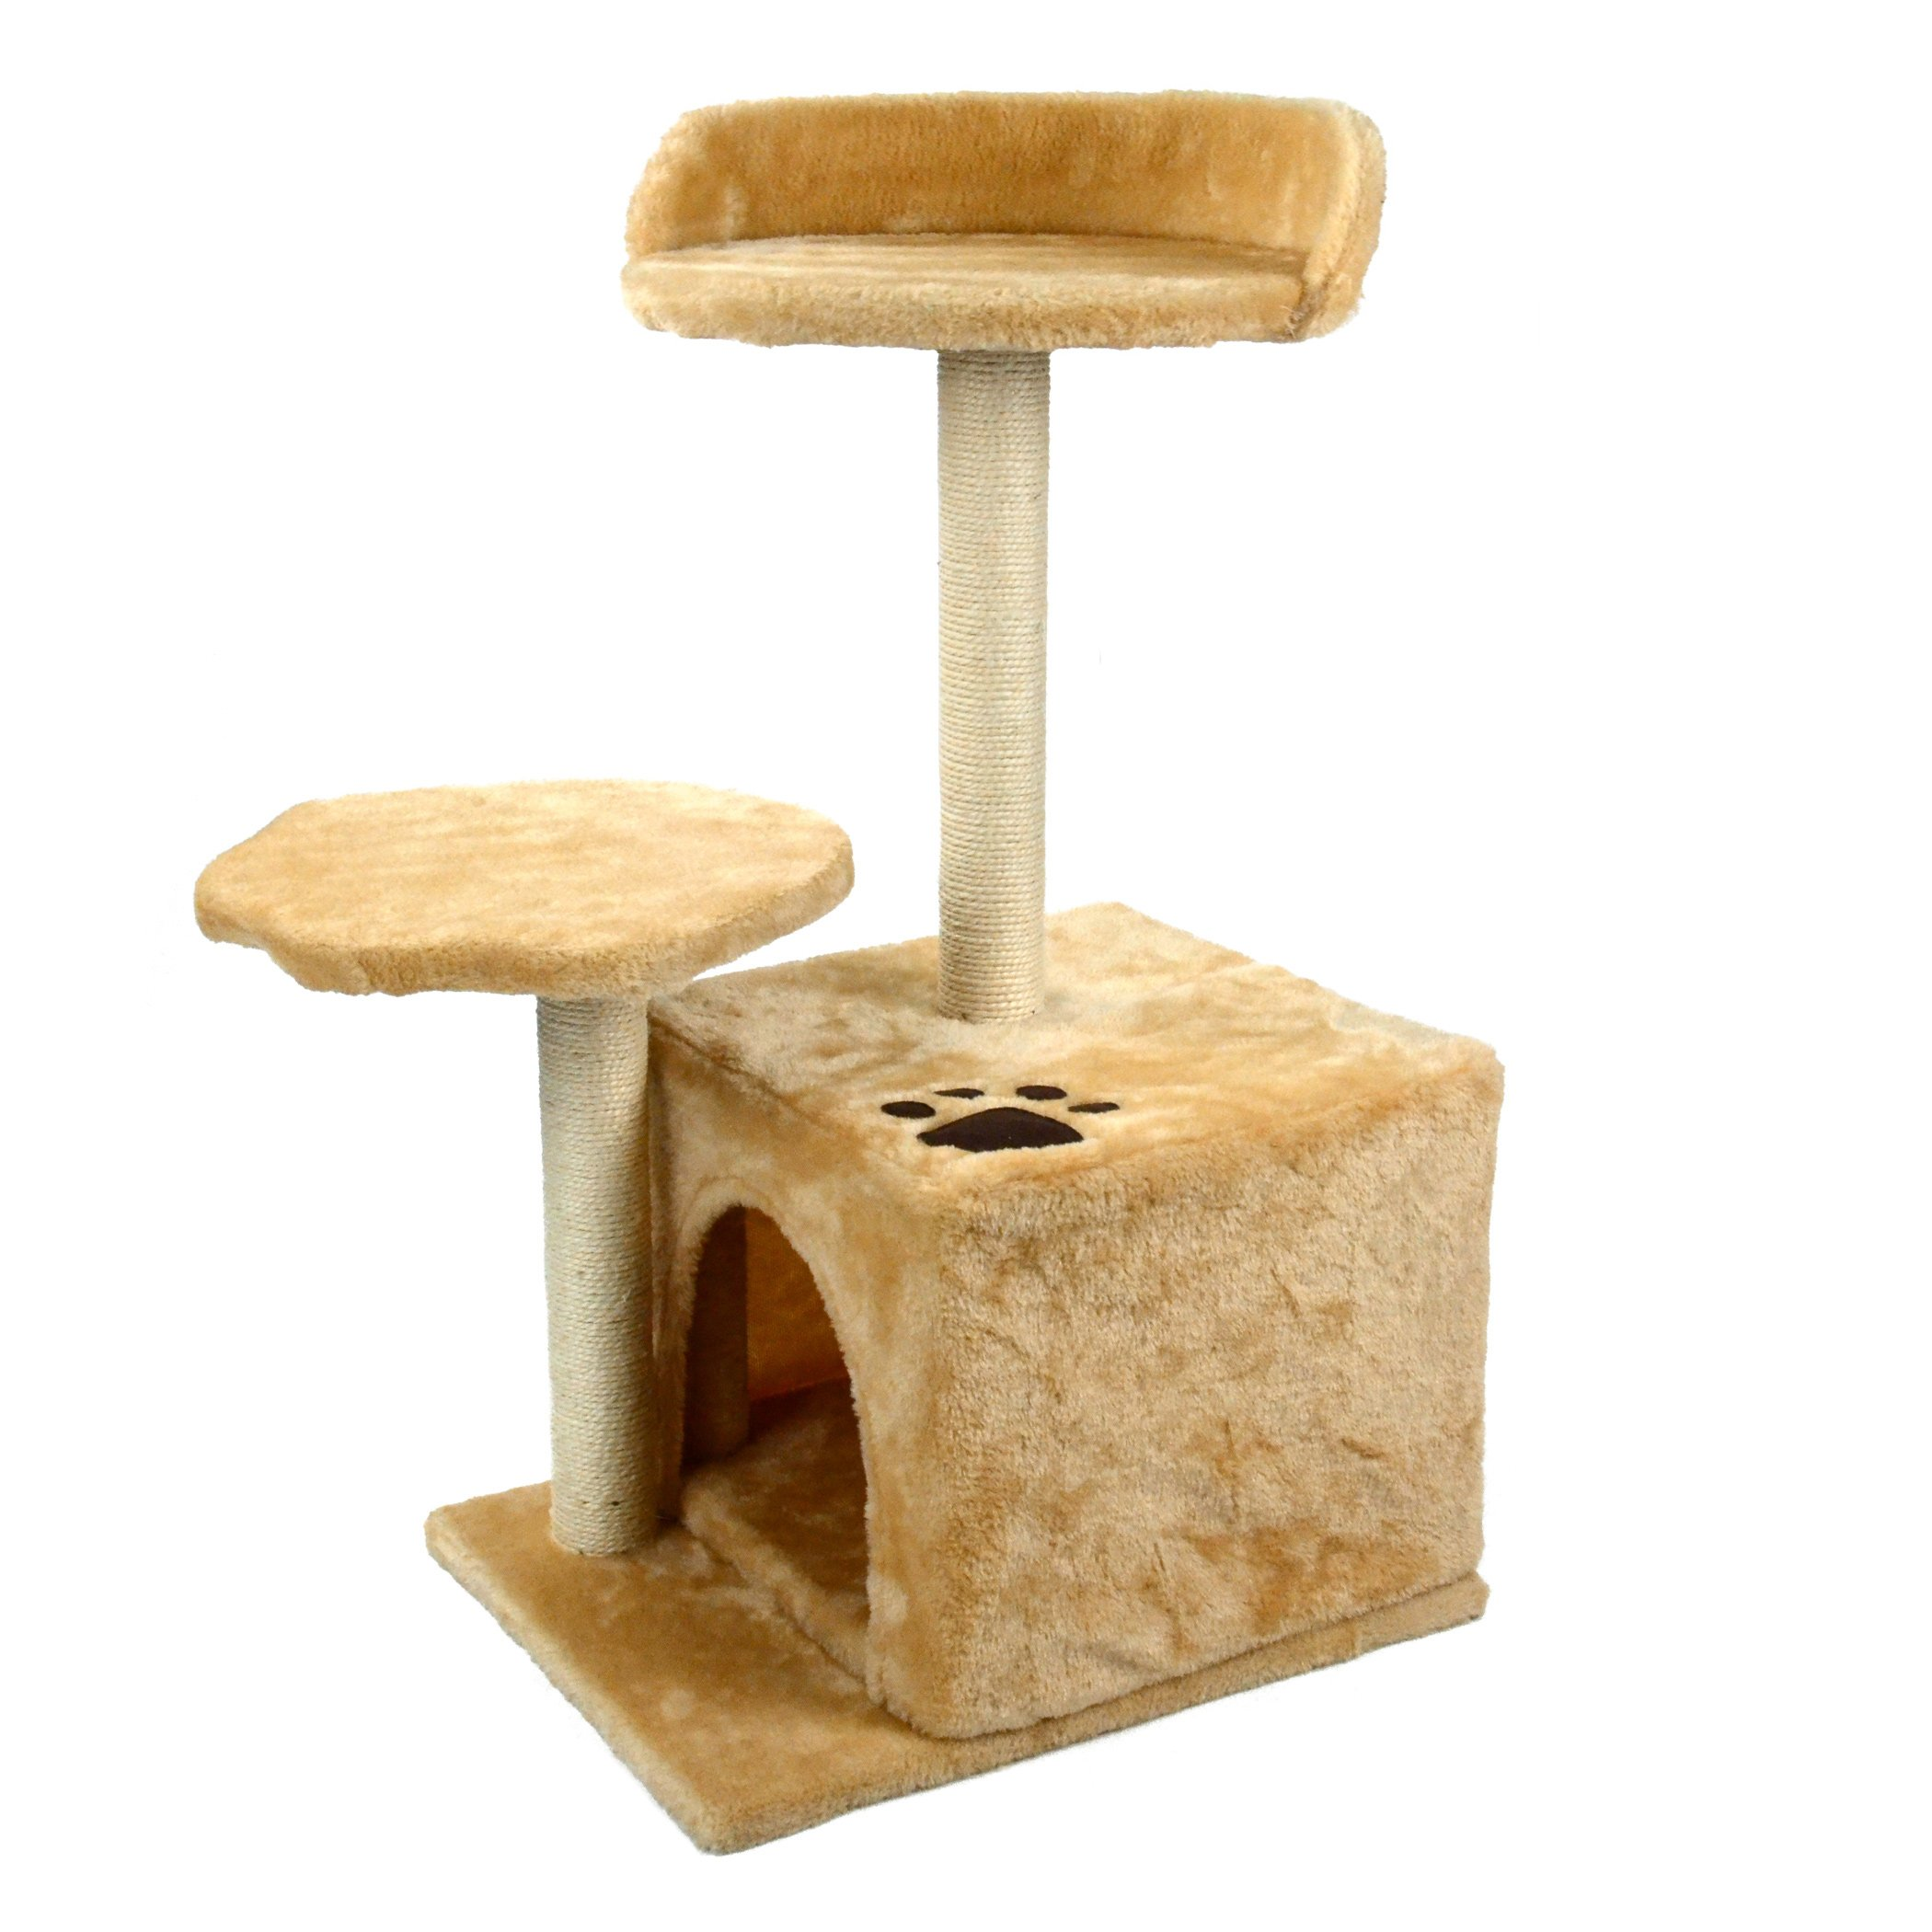 Whoobee 2 Levels Cat Tree Condo Kitty Play House Scratching Posts Tower Furniture Pet Play House Bed Deluxe Playground 2 Tiers Toys.(Beige)